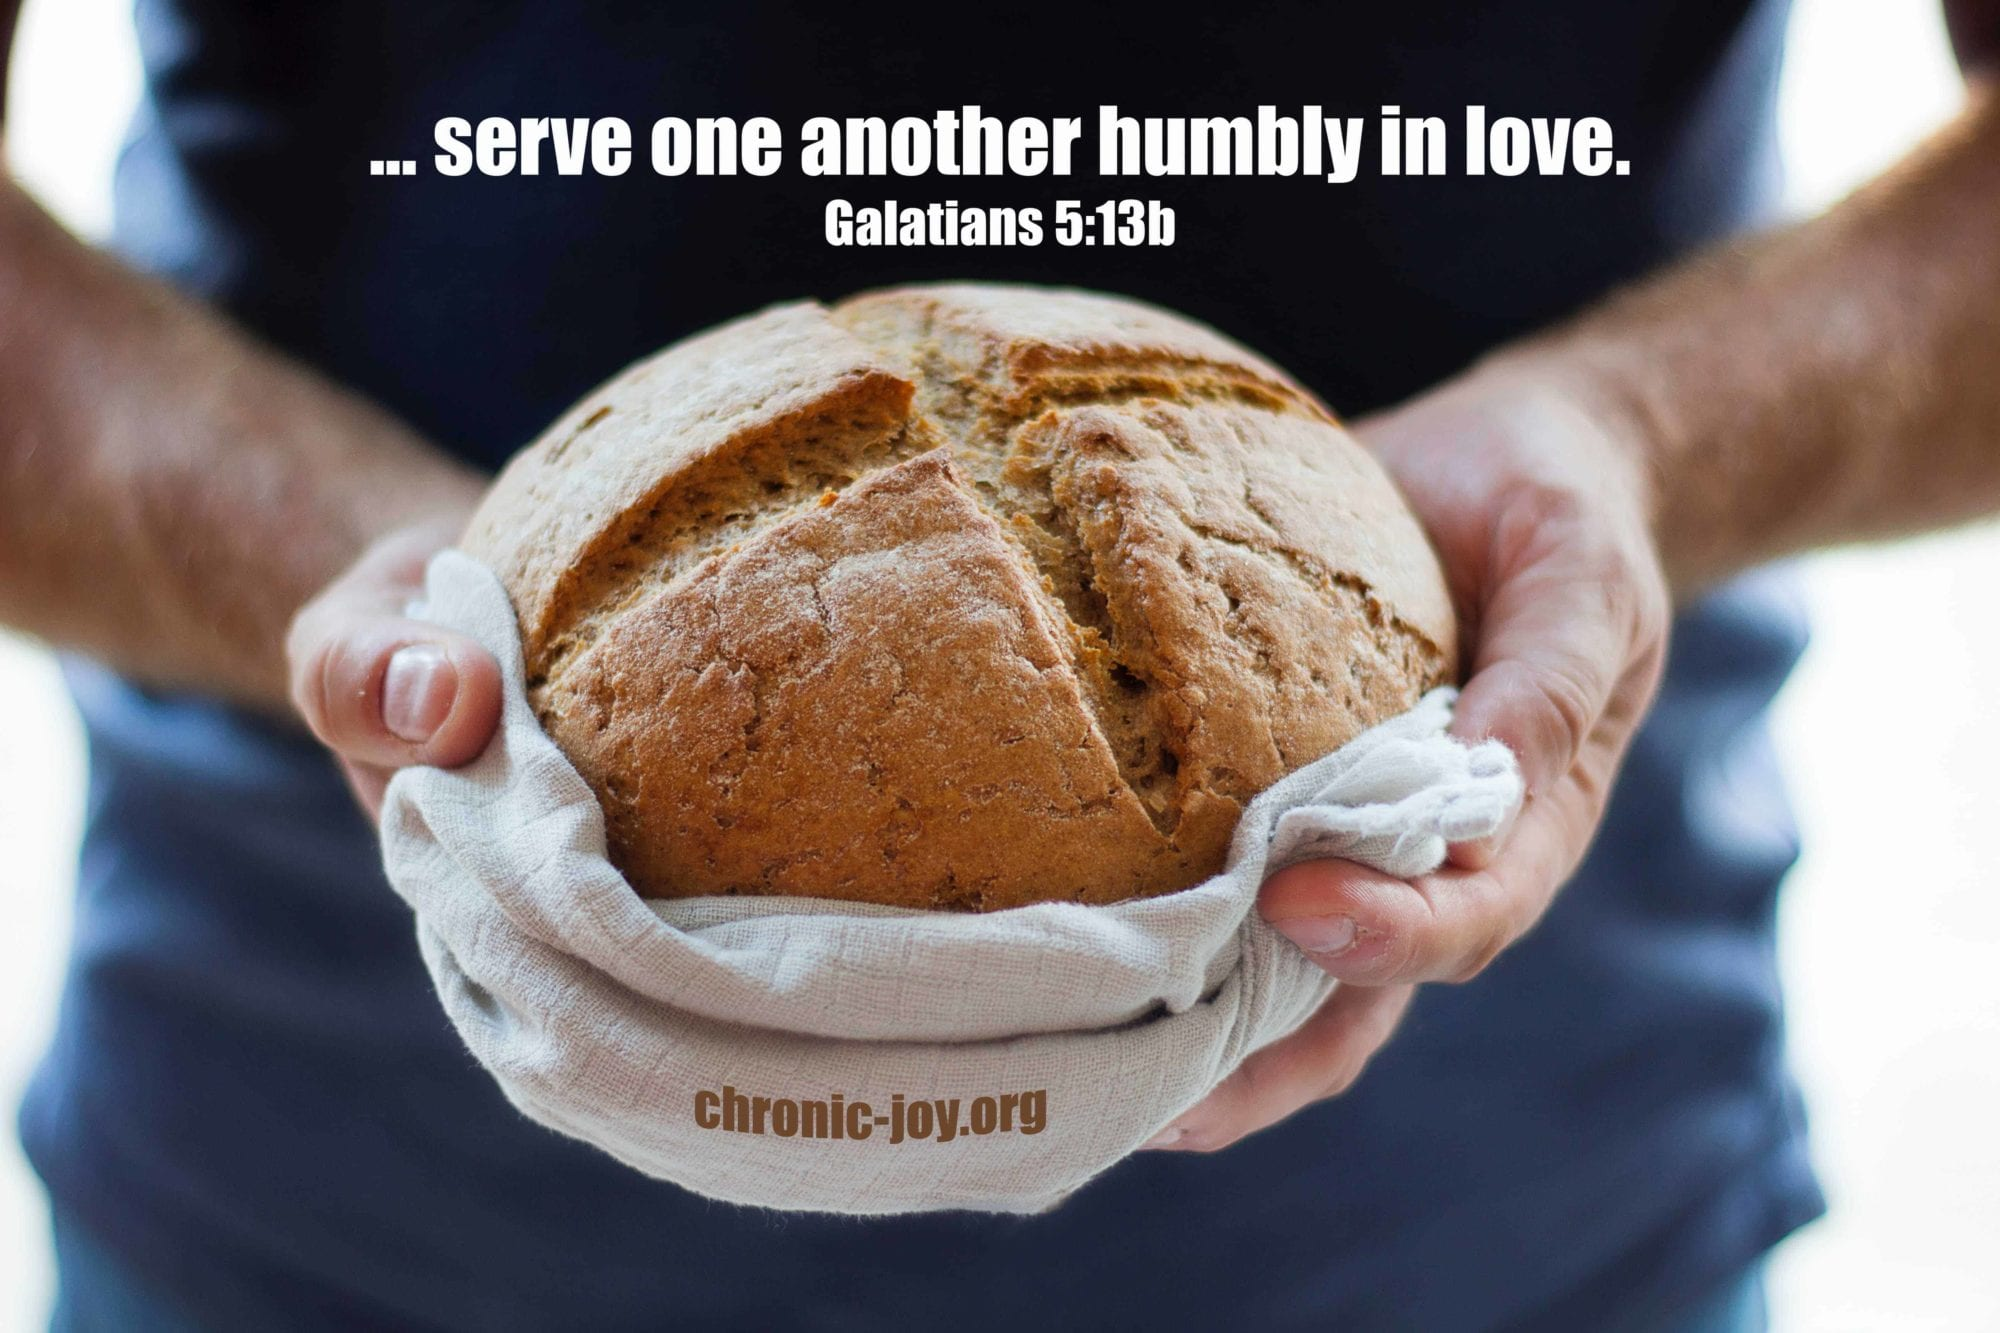 Serve one another humbly in love.